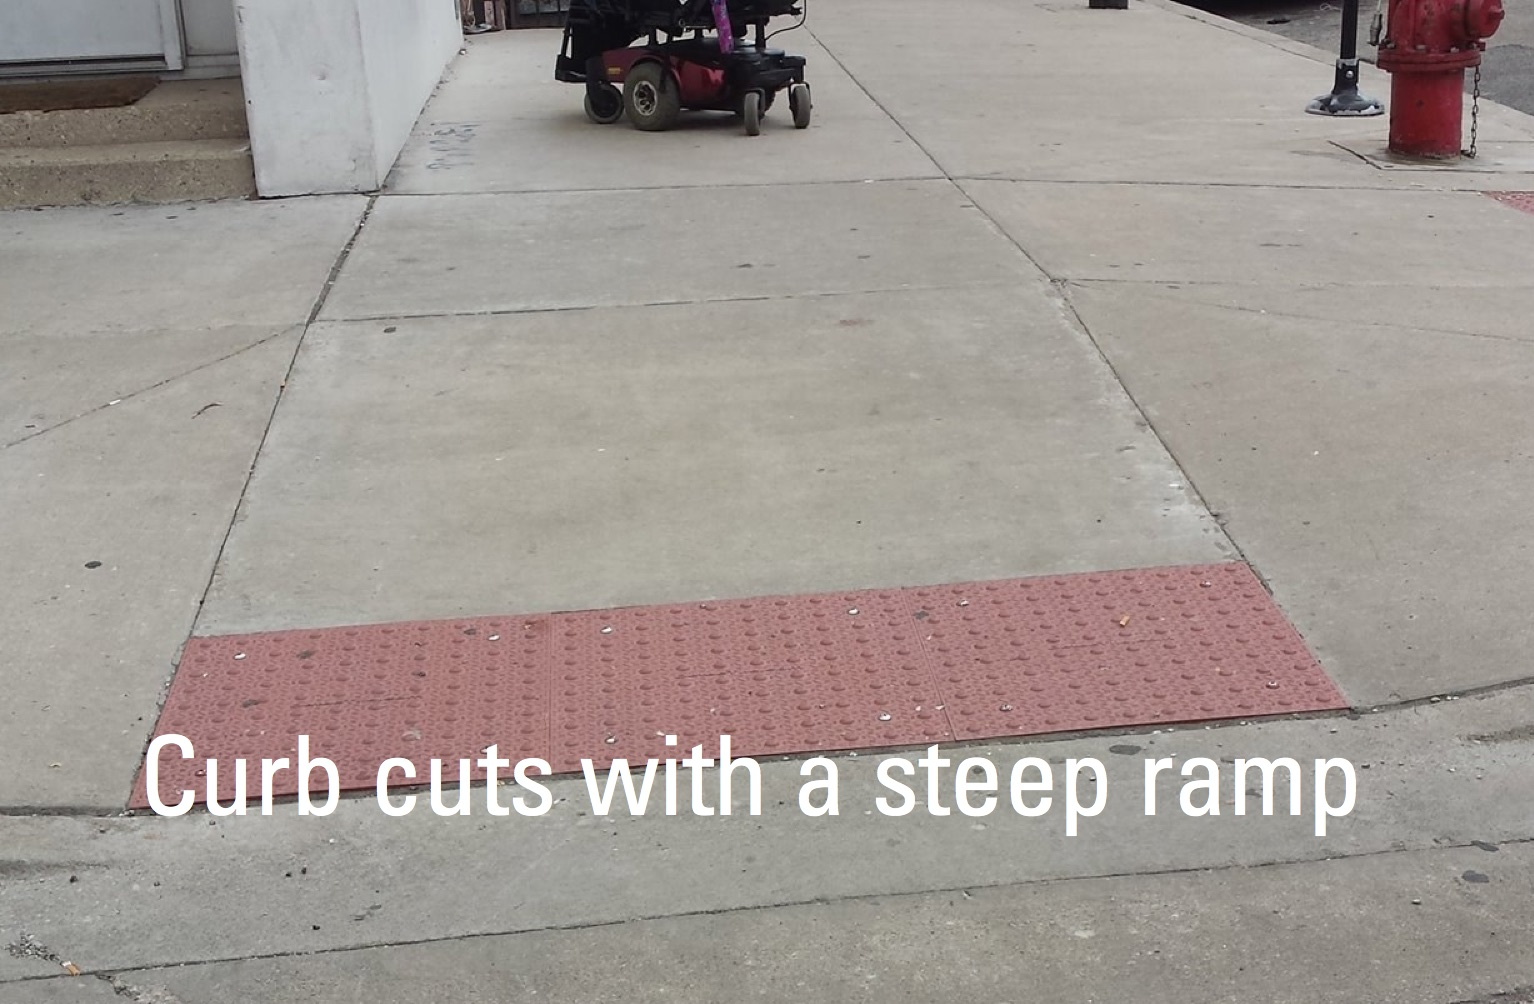 Curb cuts with a steep ramp